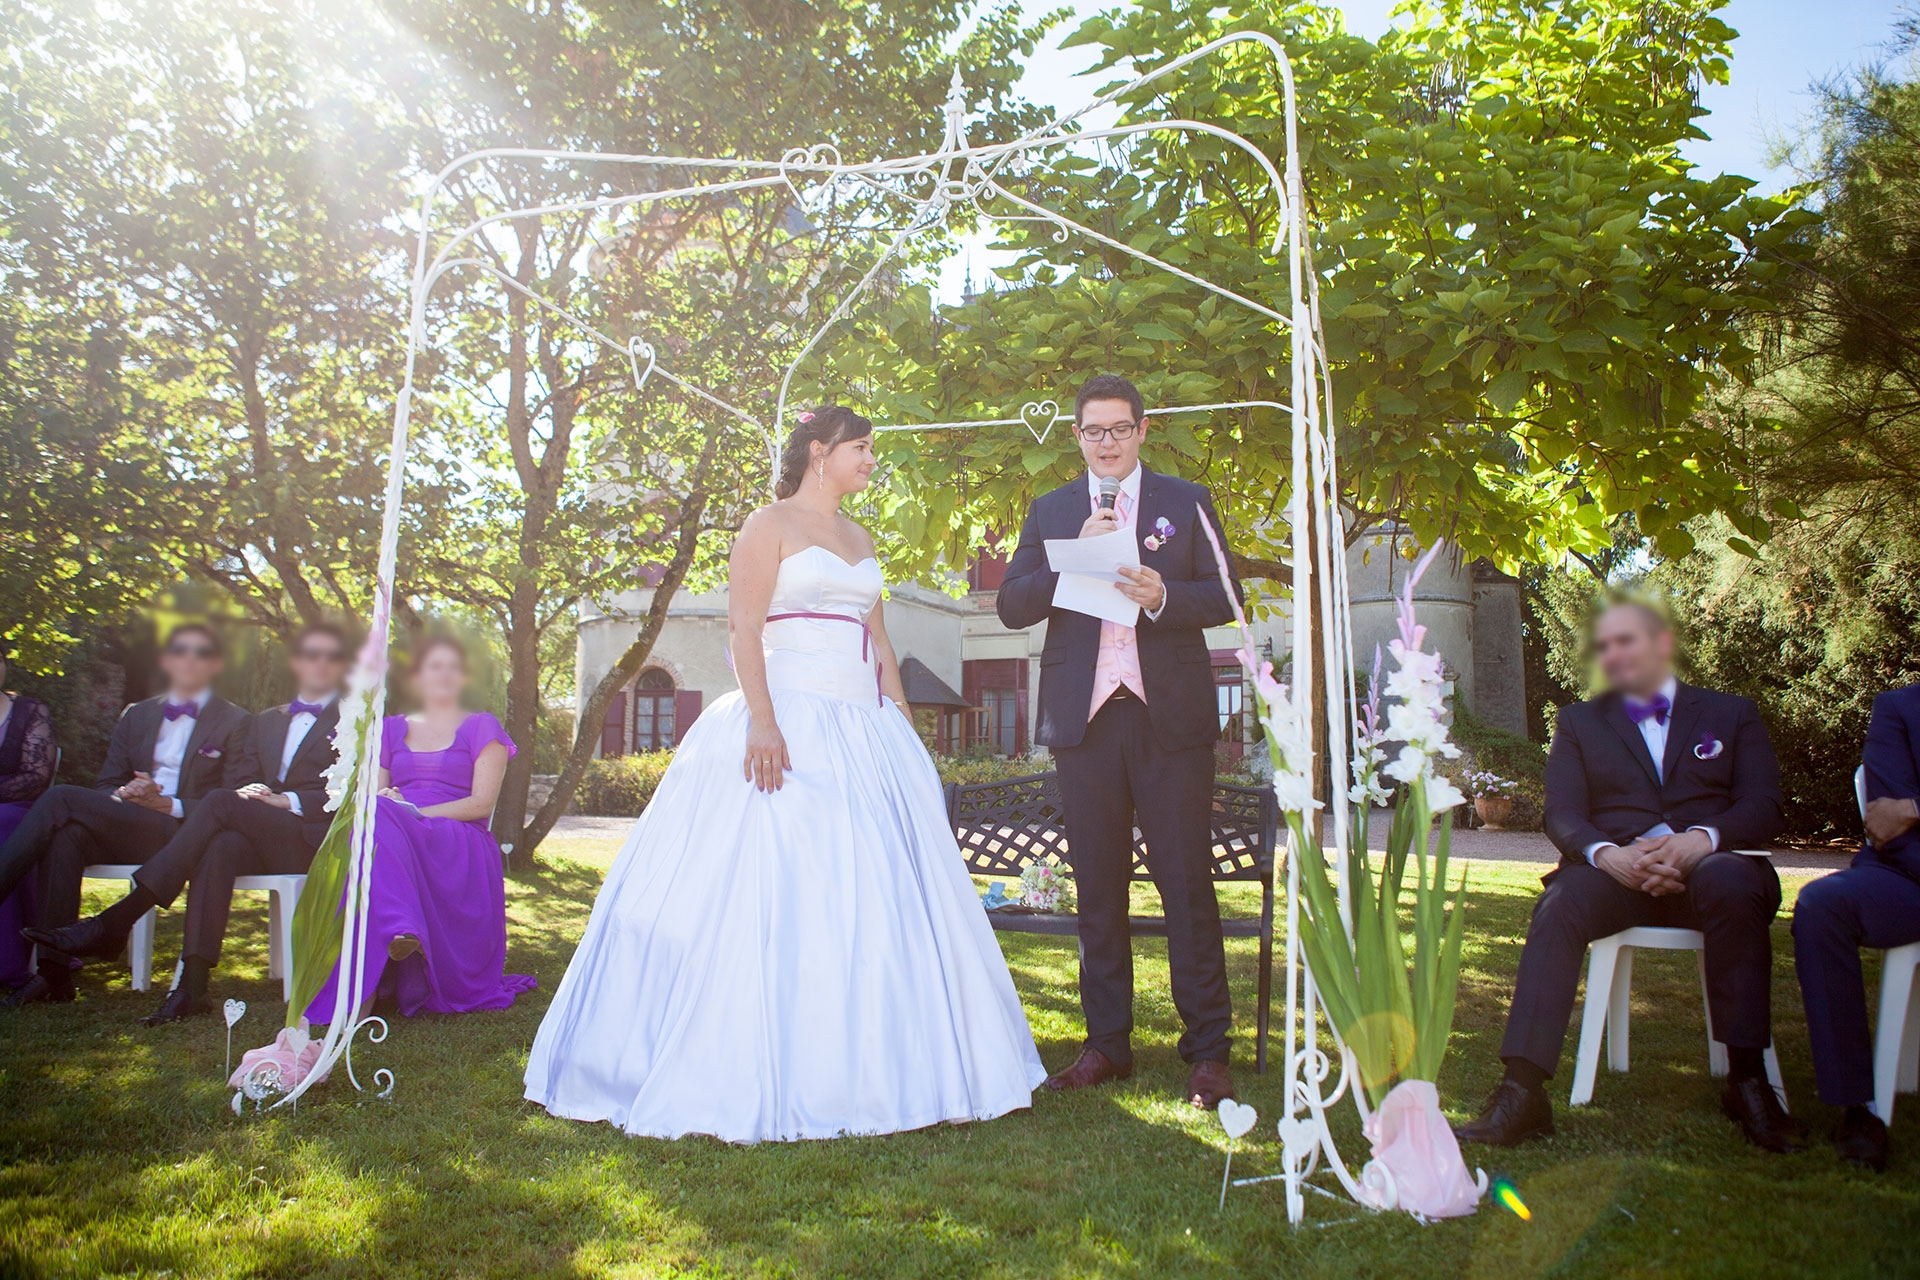 particuliers-evenements-mariages-oui-france&philippe-54